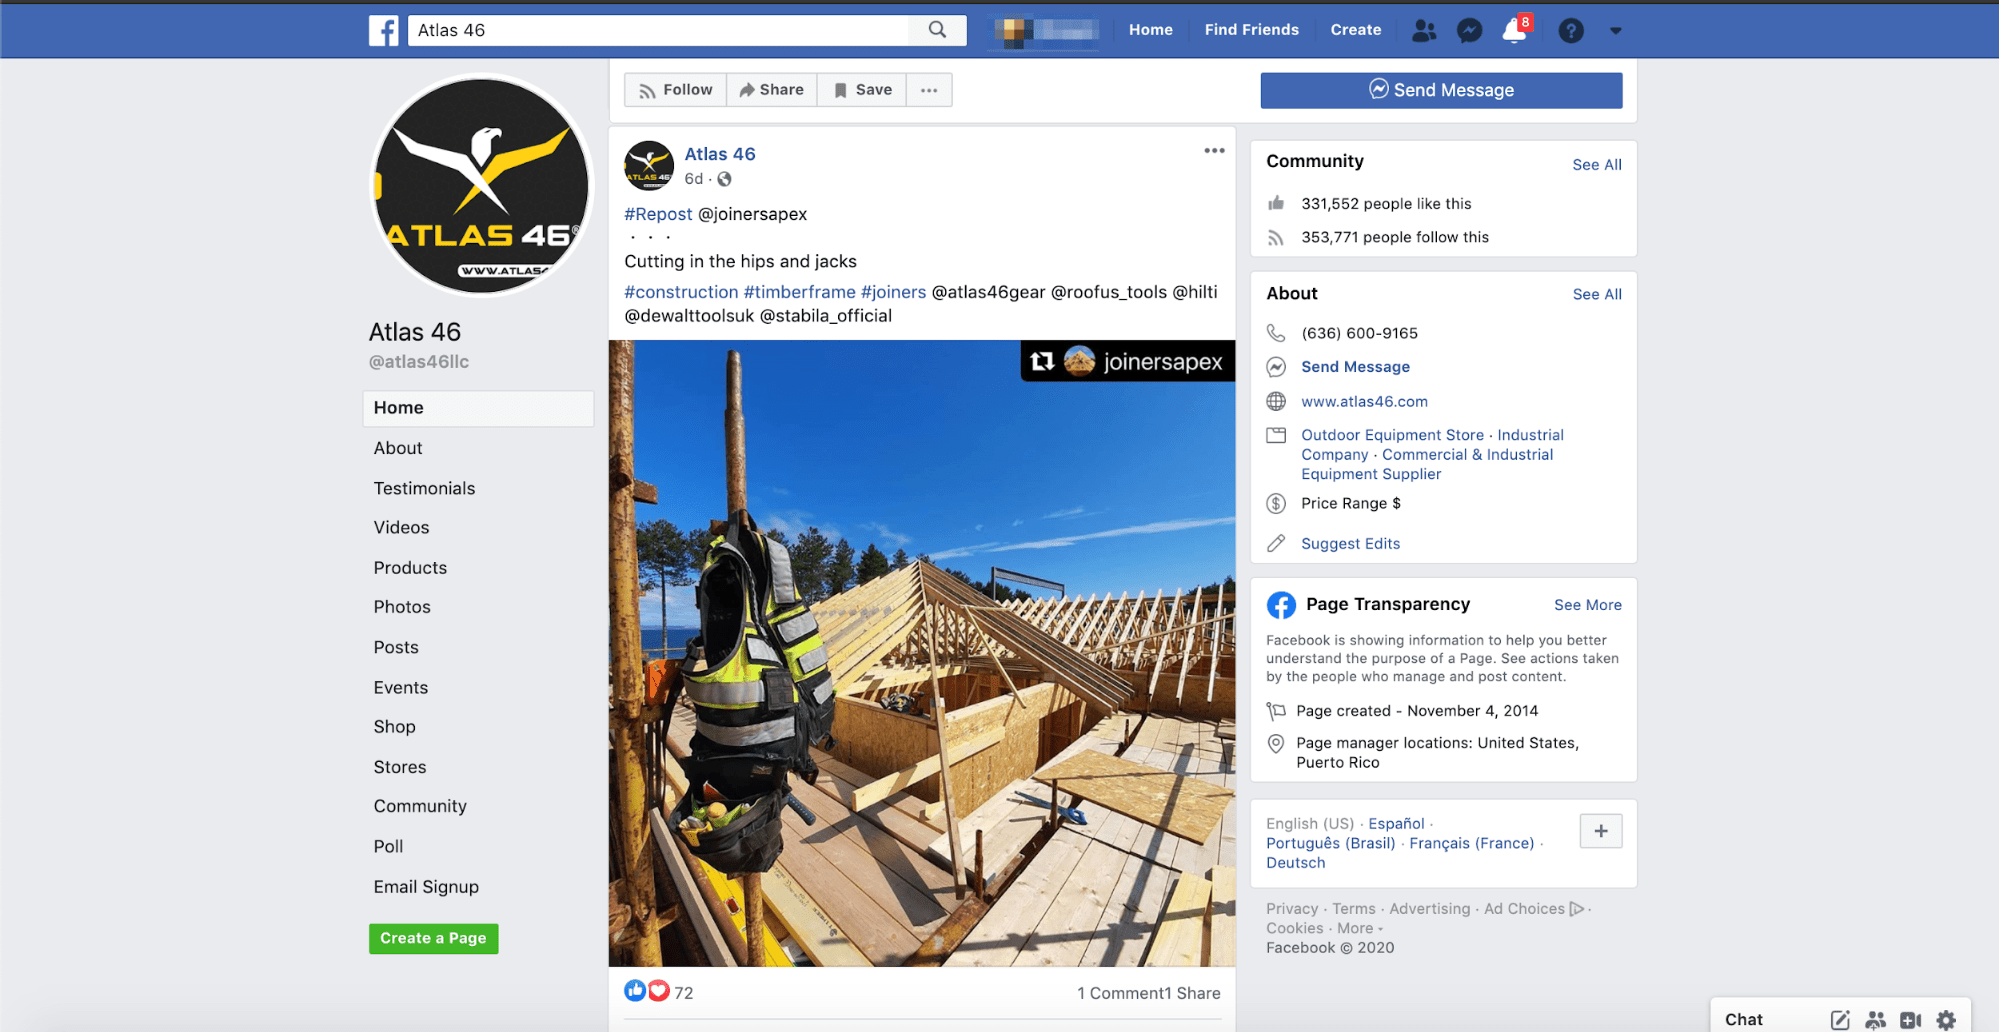 Atlas46, a construction tool business, with 300K followers on Facebook, reshares user content in their feed